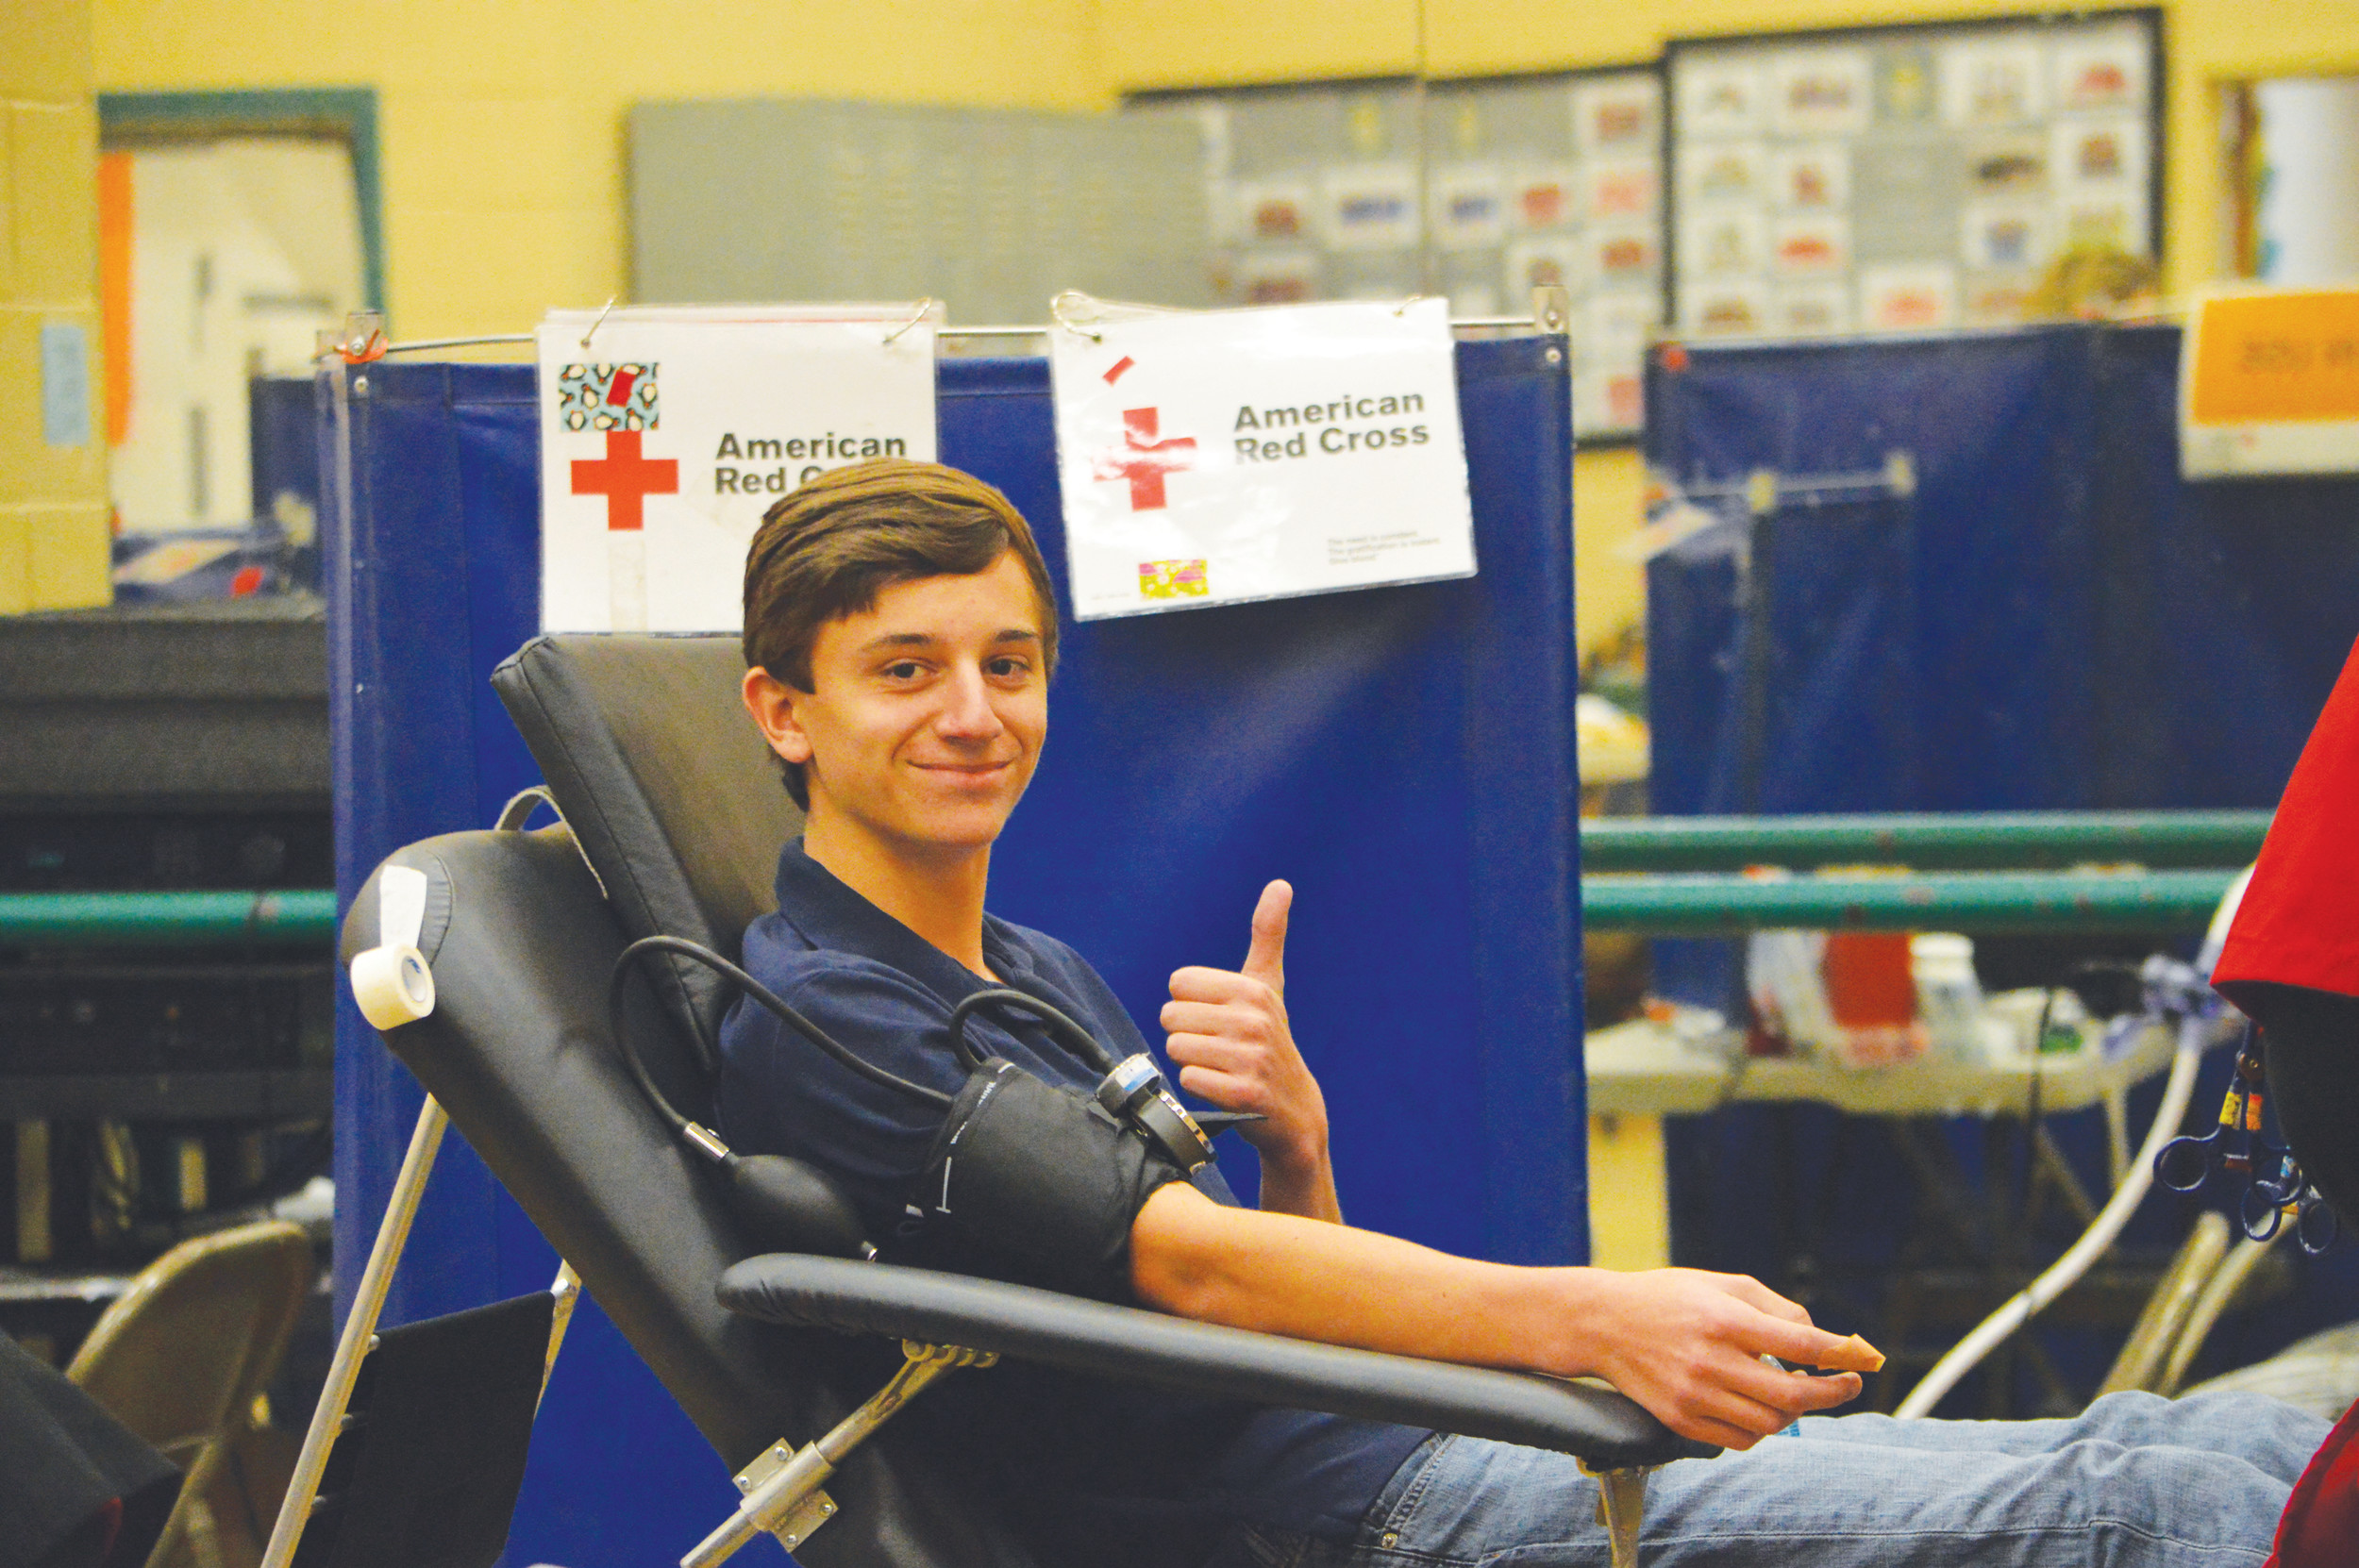 PHOTO PROVIDEDRecently, Thomas Sumter Academy partnered with the American Red Cross and held a blood drive in which students, parents, faculty and staff contributed blood.